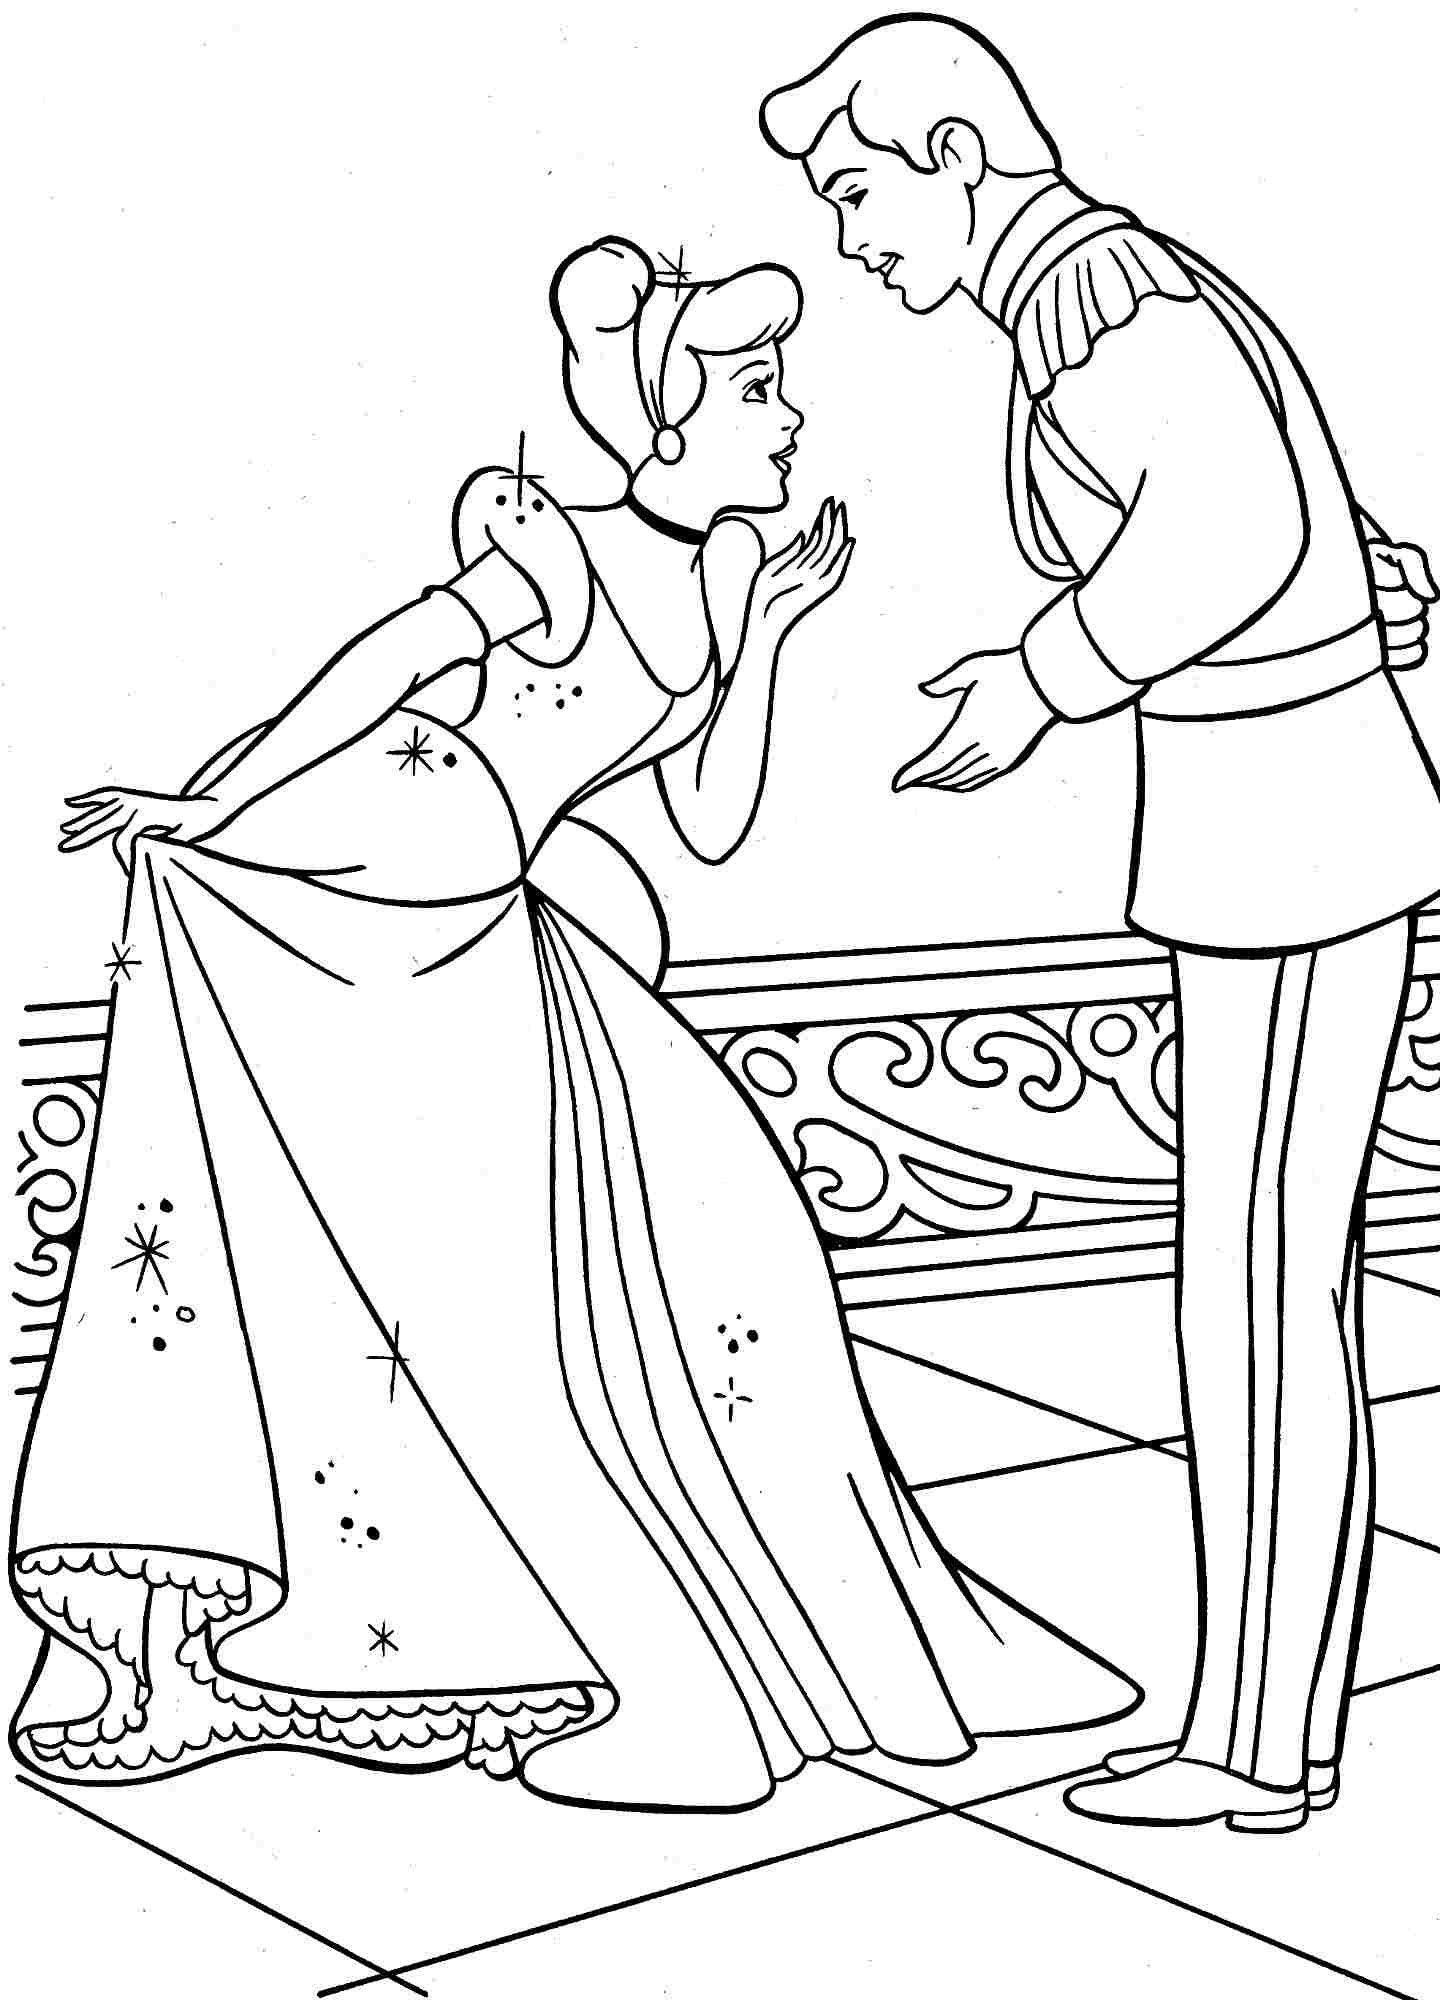 Disney Princess Cinderella Coloring Pages Games From The Thousands Of Pictur Disney Princess Coloring Pages Cinderella Coloring Pages Princess Coloring Pages